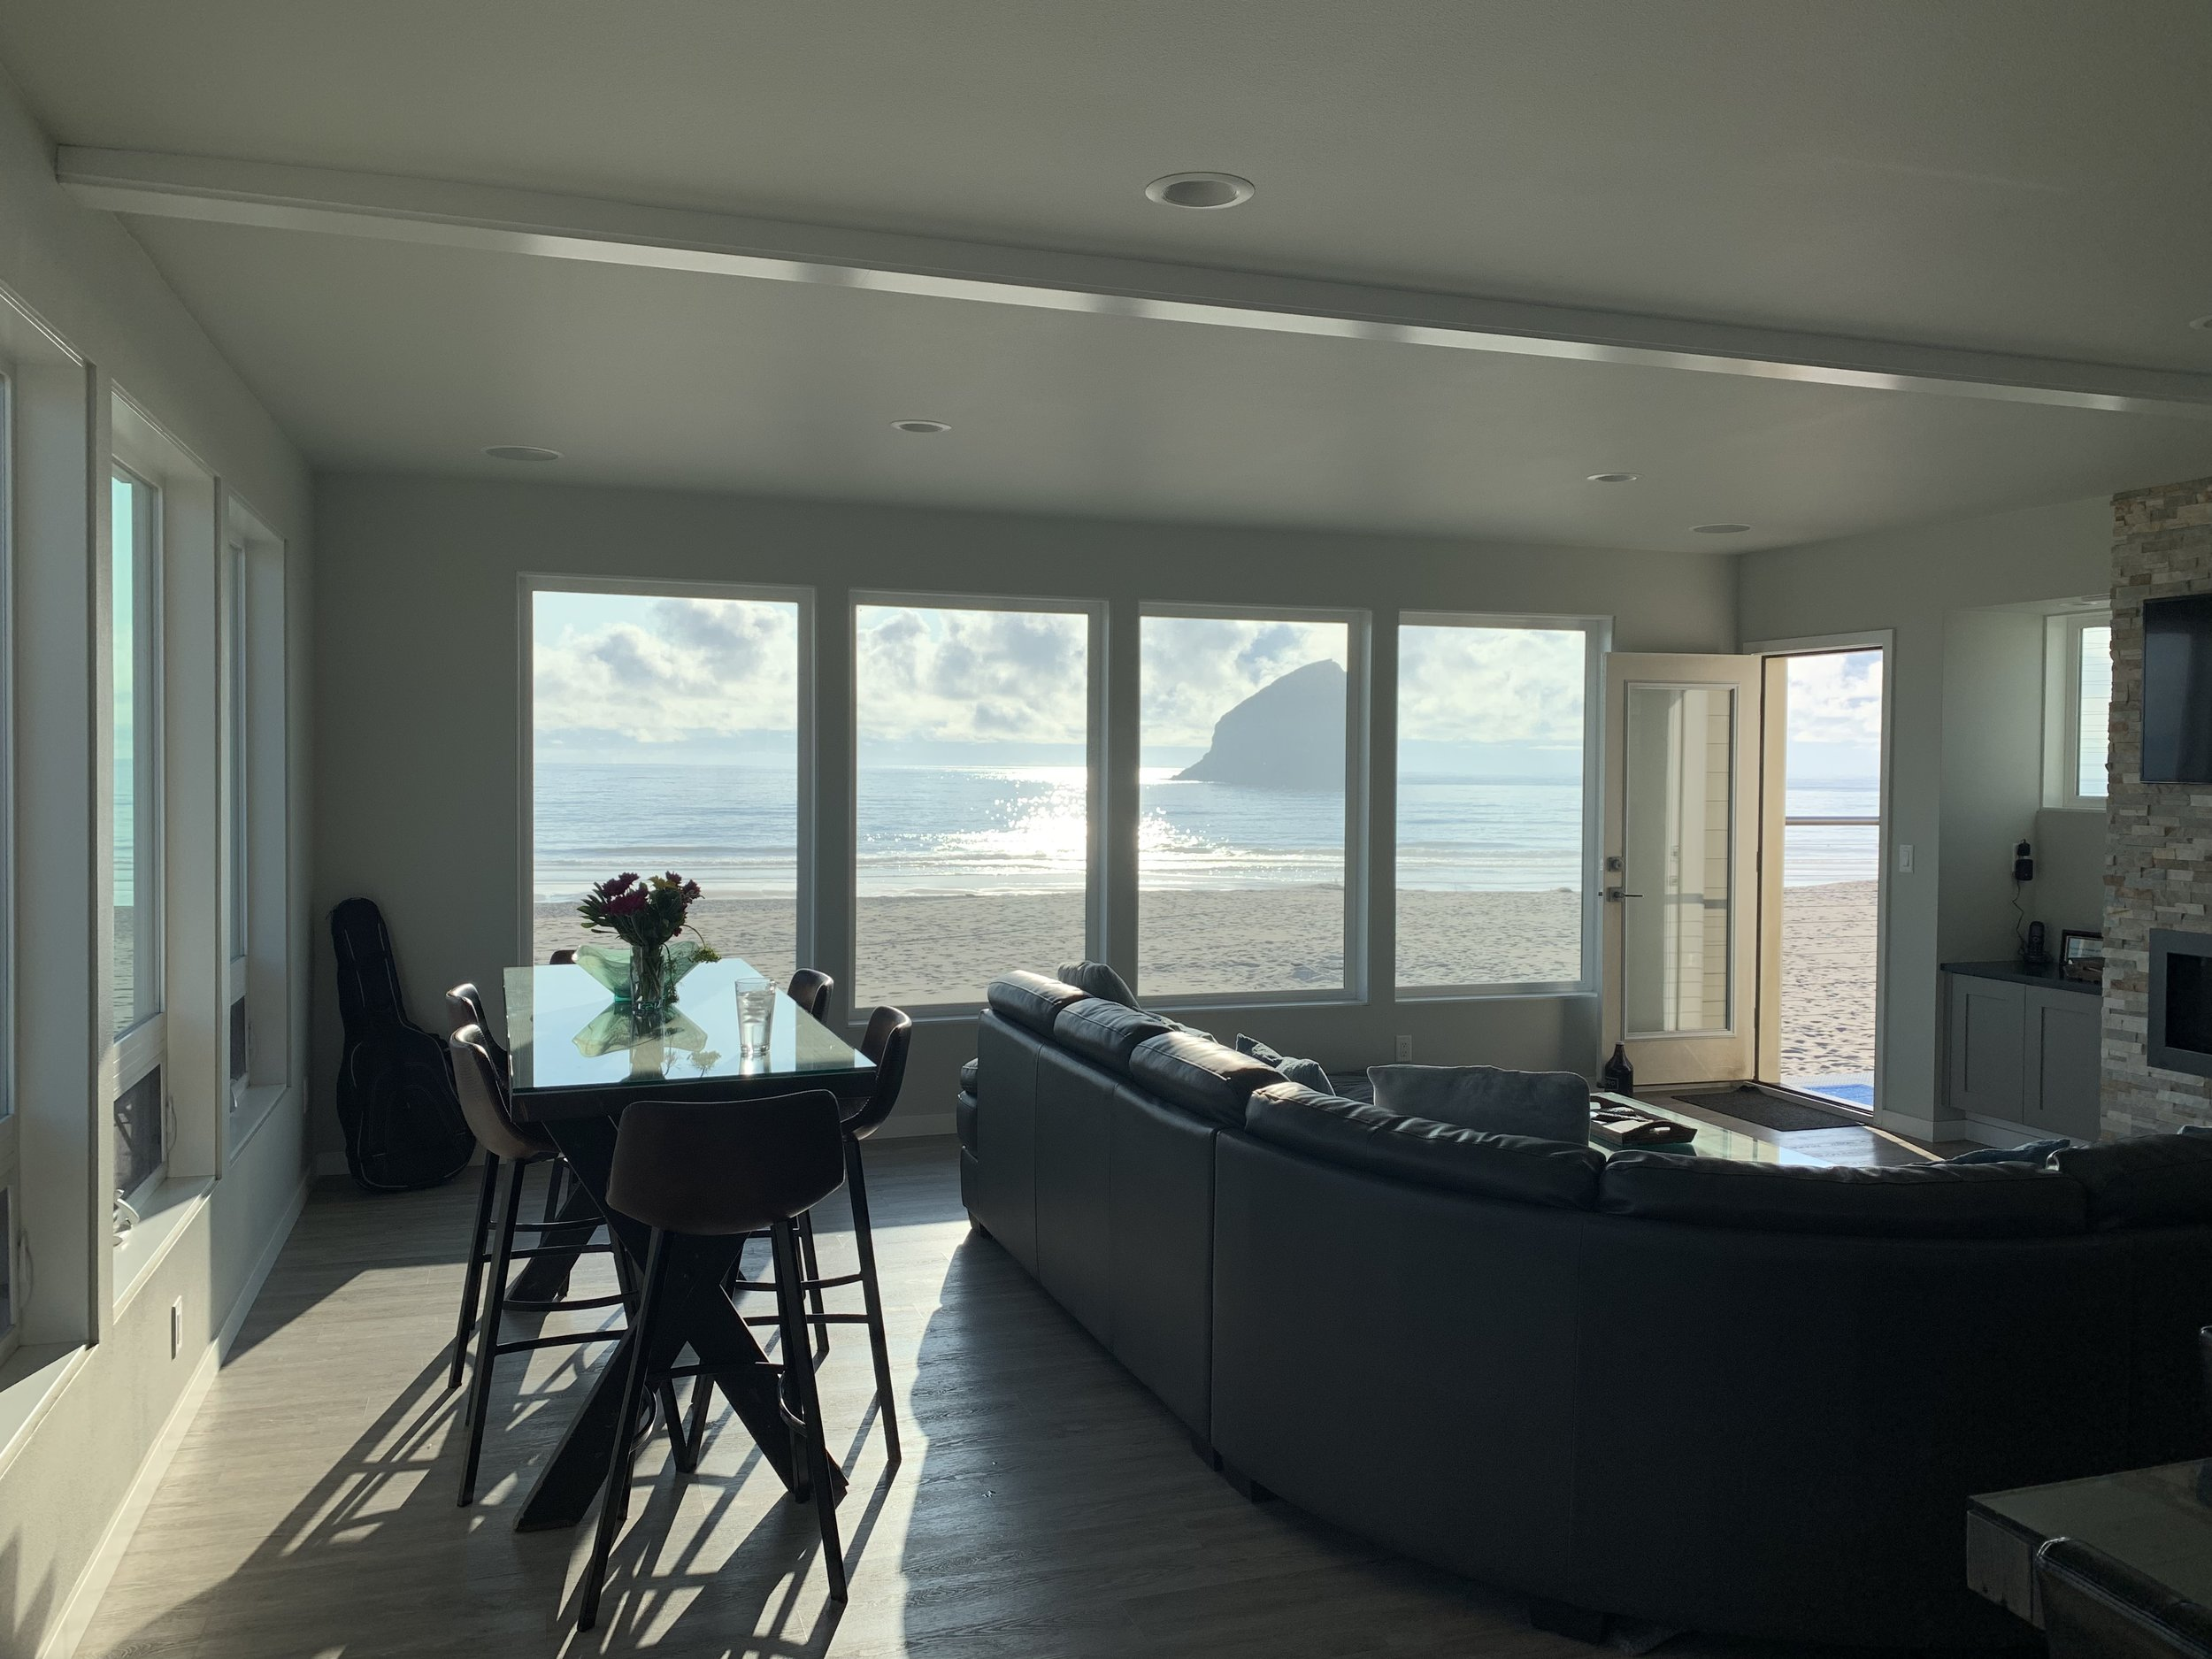 The view from inside our rented beach house. Wow, this was TOUGH to leave! Image Courtesy: Dan Meyers